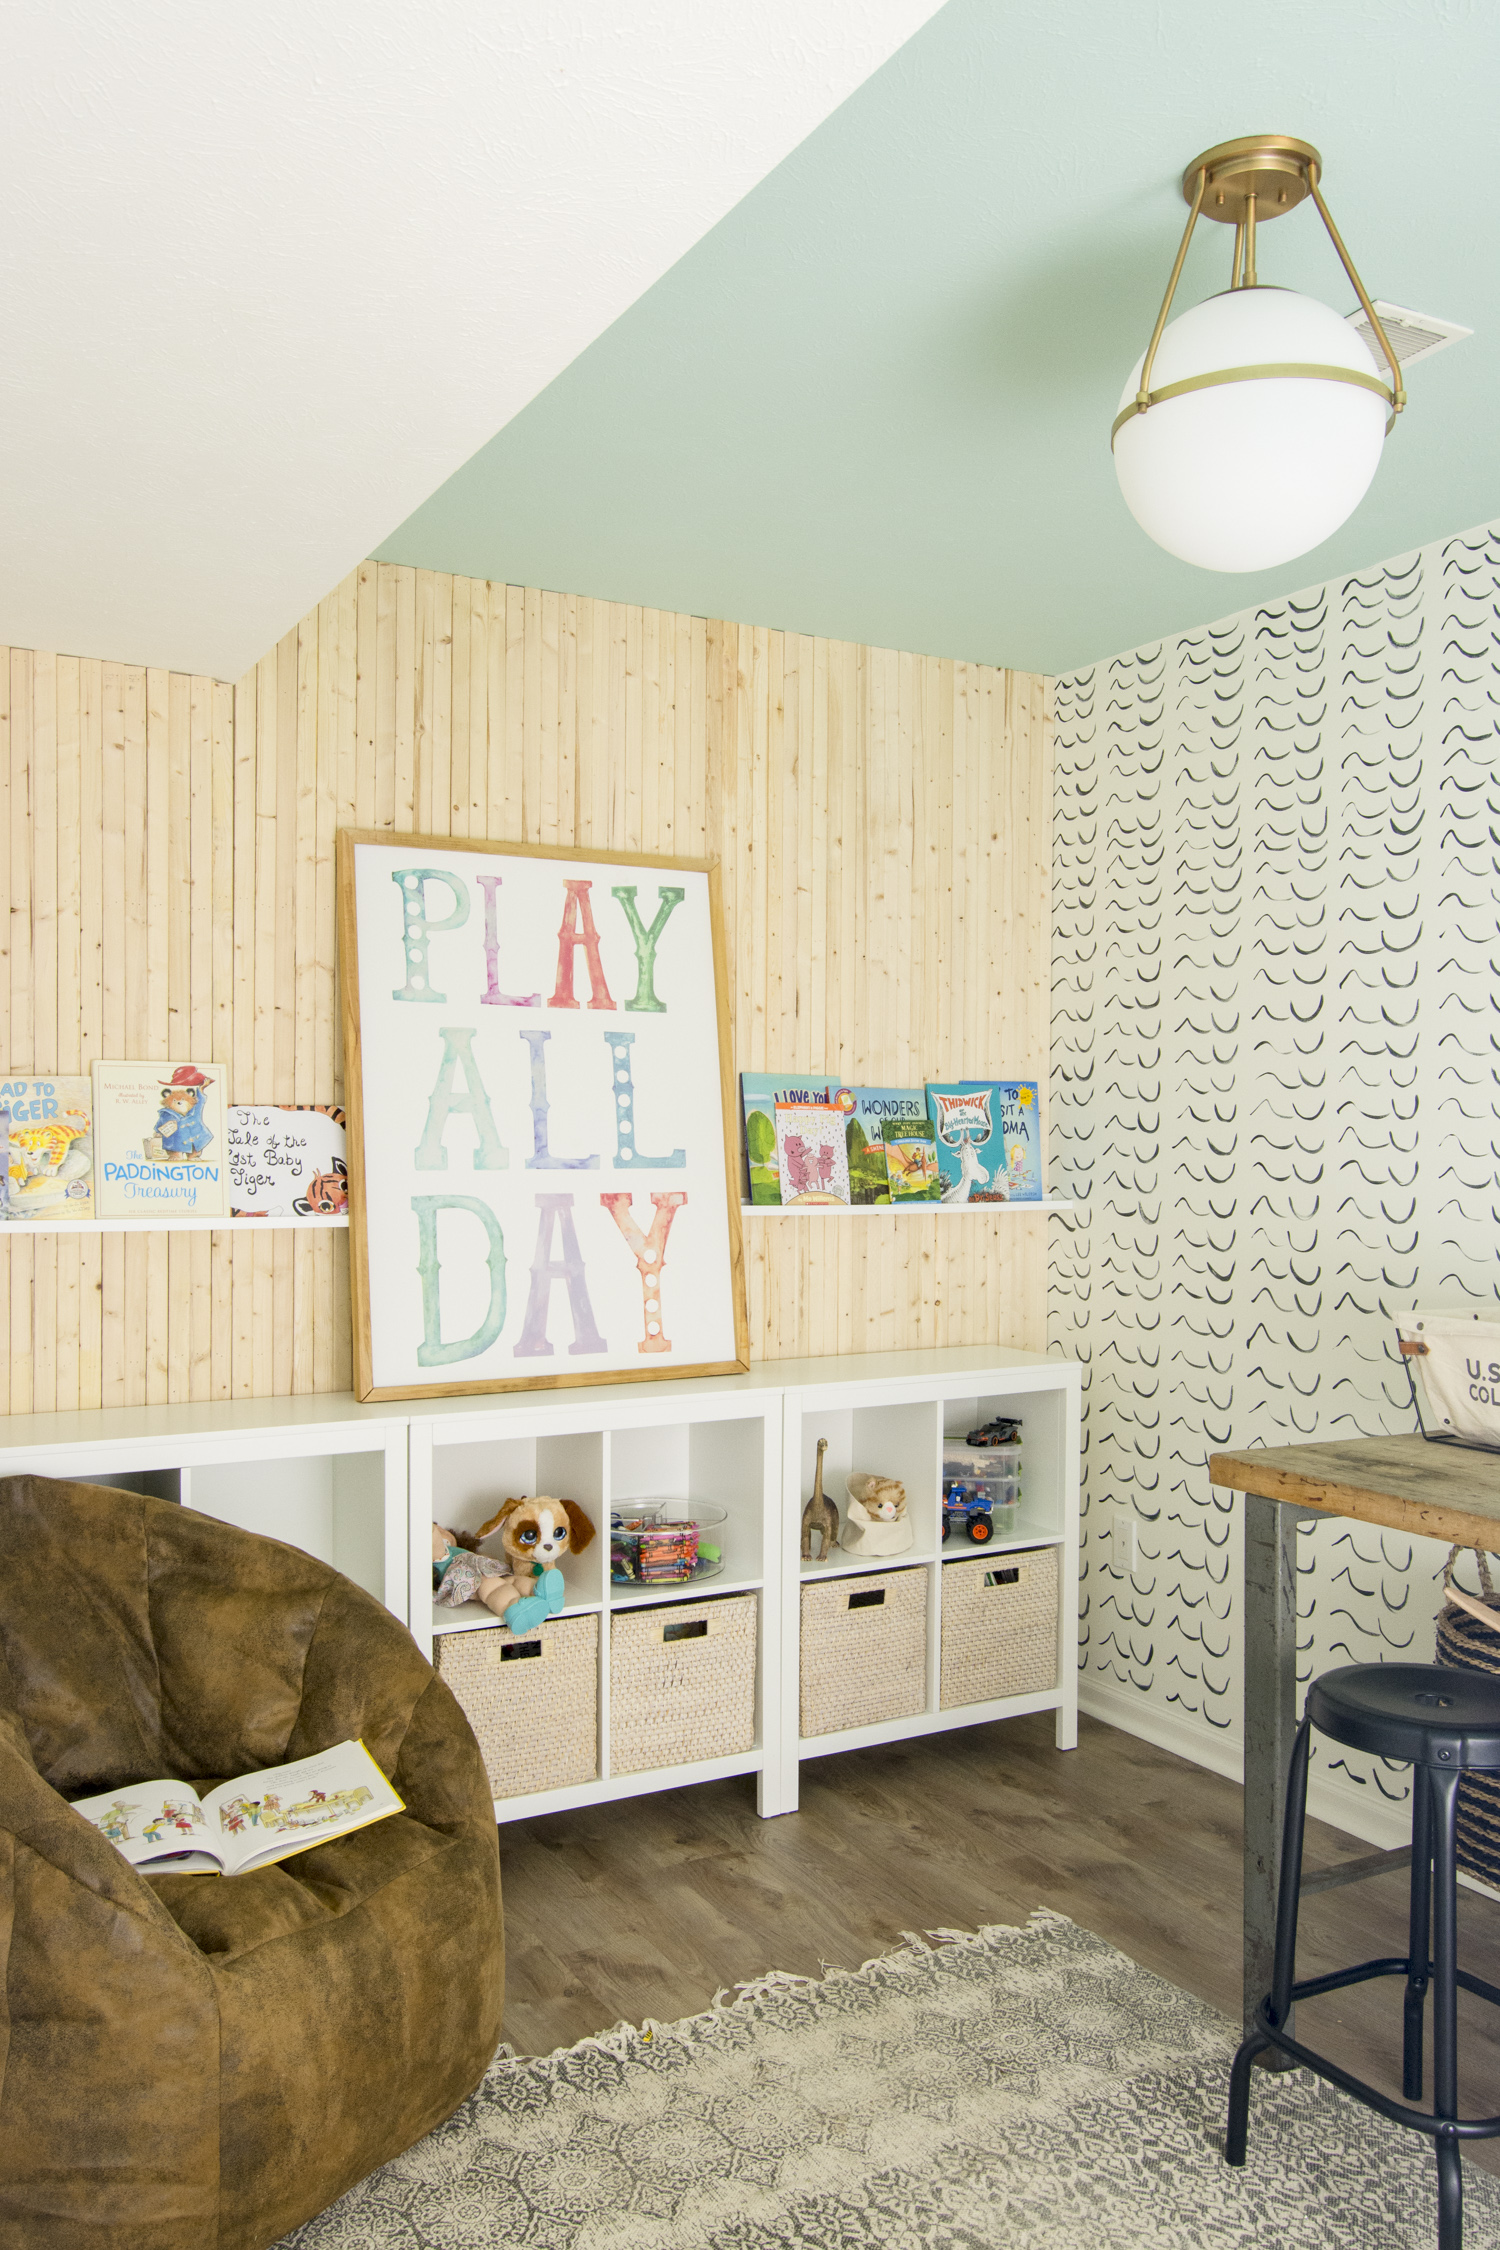 Love this cute playroom with blue ceiling kellyelko.com #playroom #kidsrooms #kidsdecor